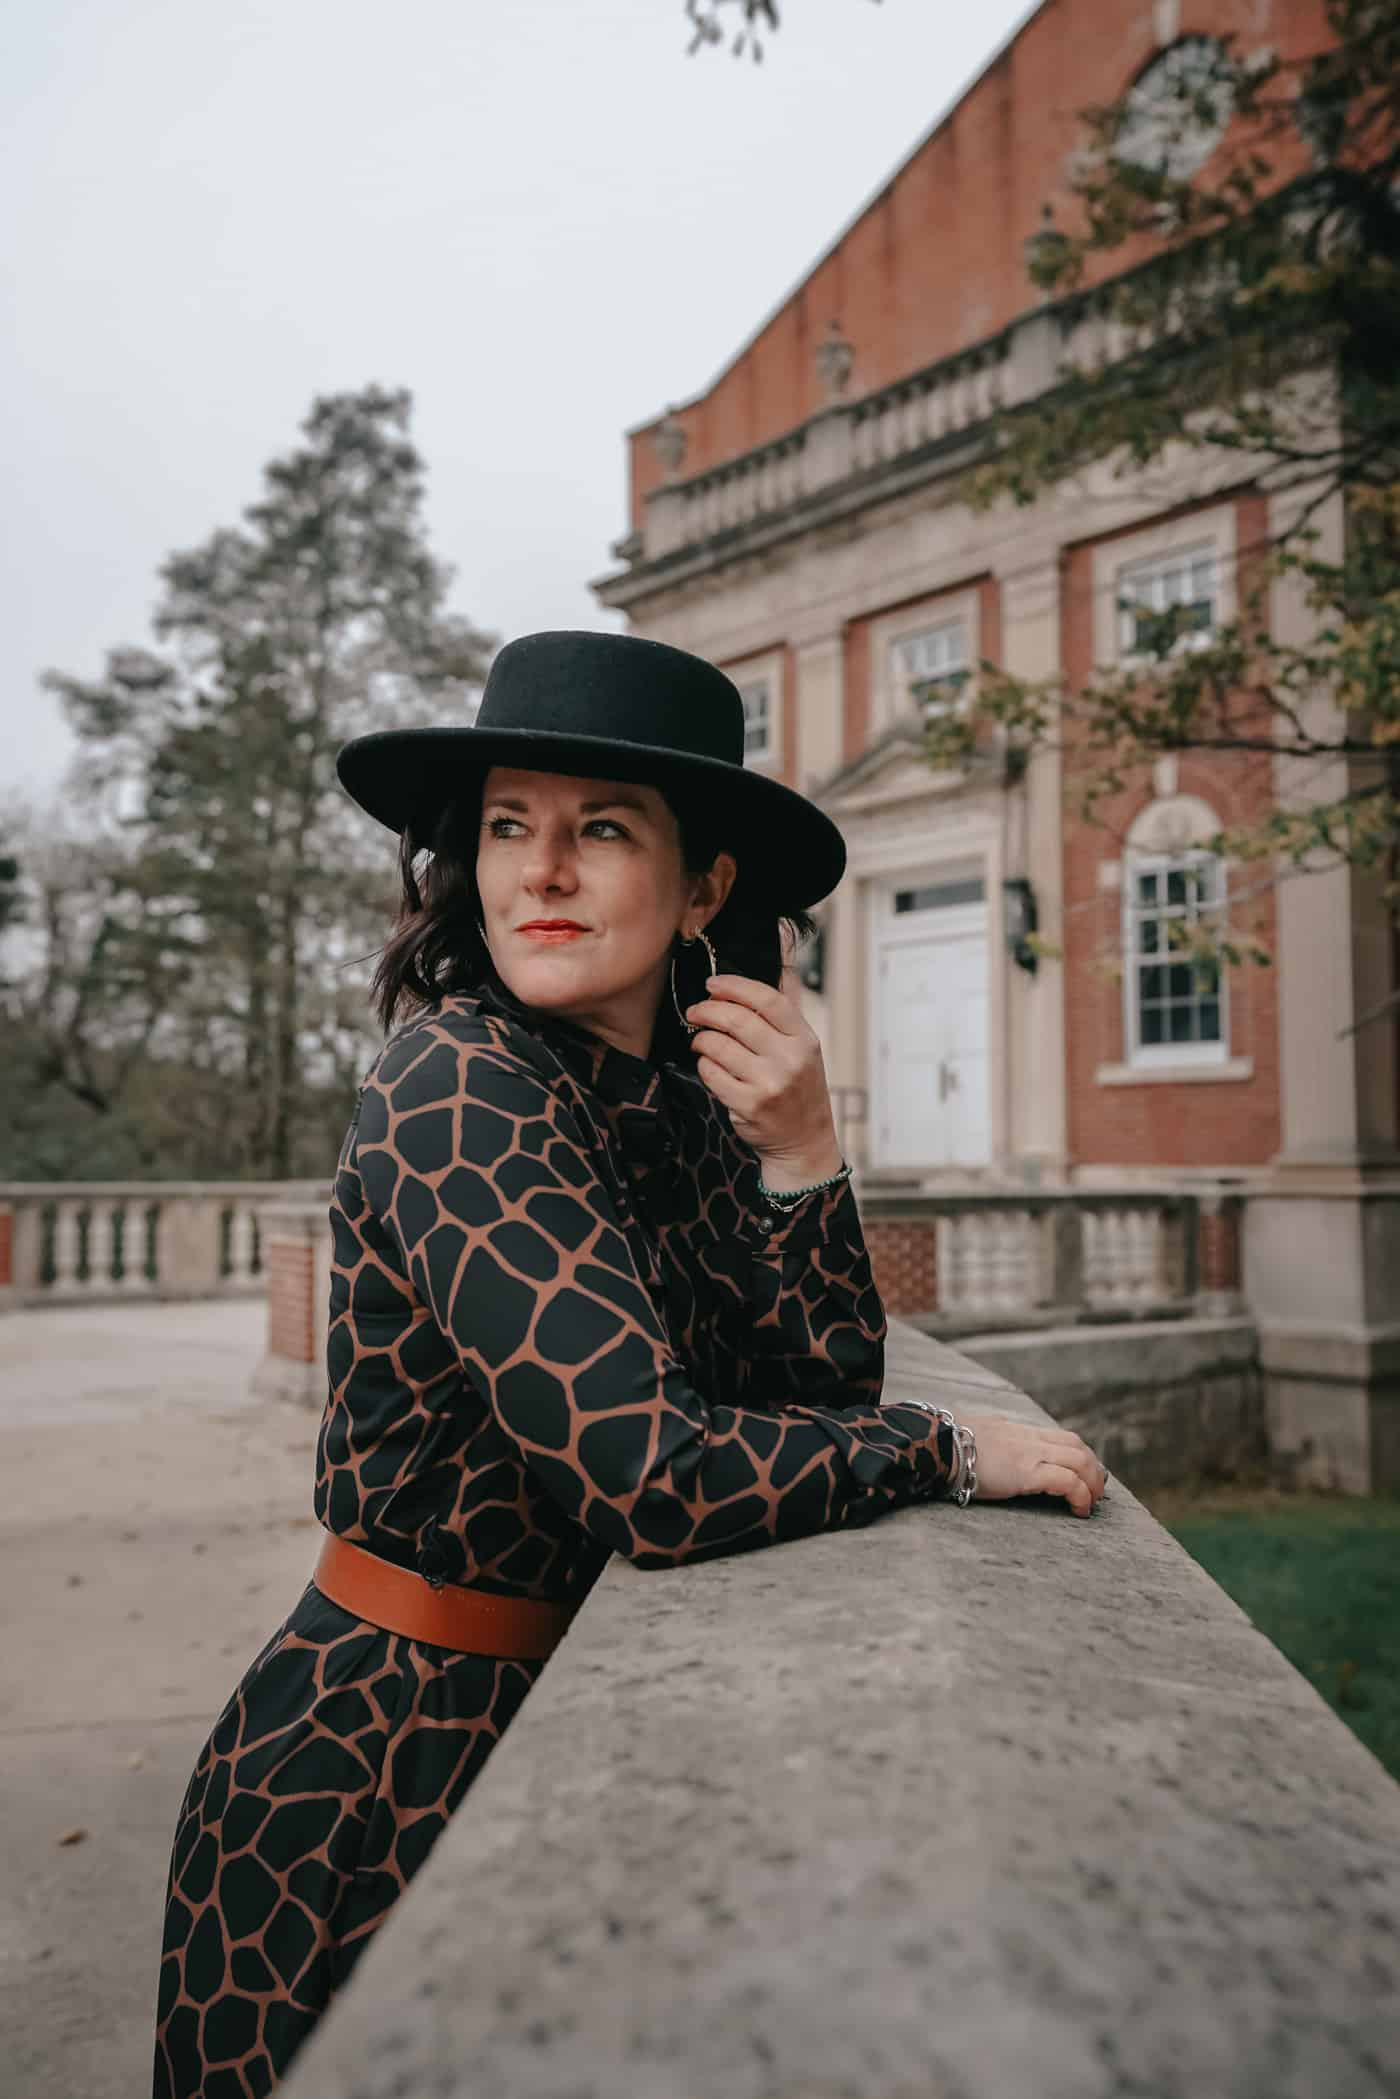 Anna Baun of A Lily Love Affair sharing 20 affordable dresses with sleeves that are perfect for Fall and Winter. Plus, a great Nordstrom giveaway! #Dresses #DressesWithSleeves #FallDresses #WinterDresses #PetiteDresses